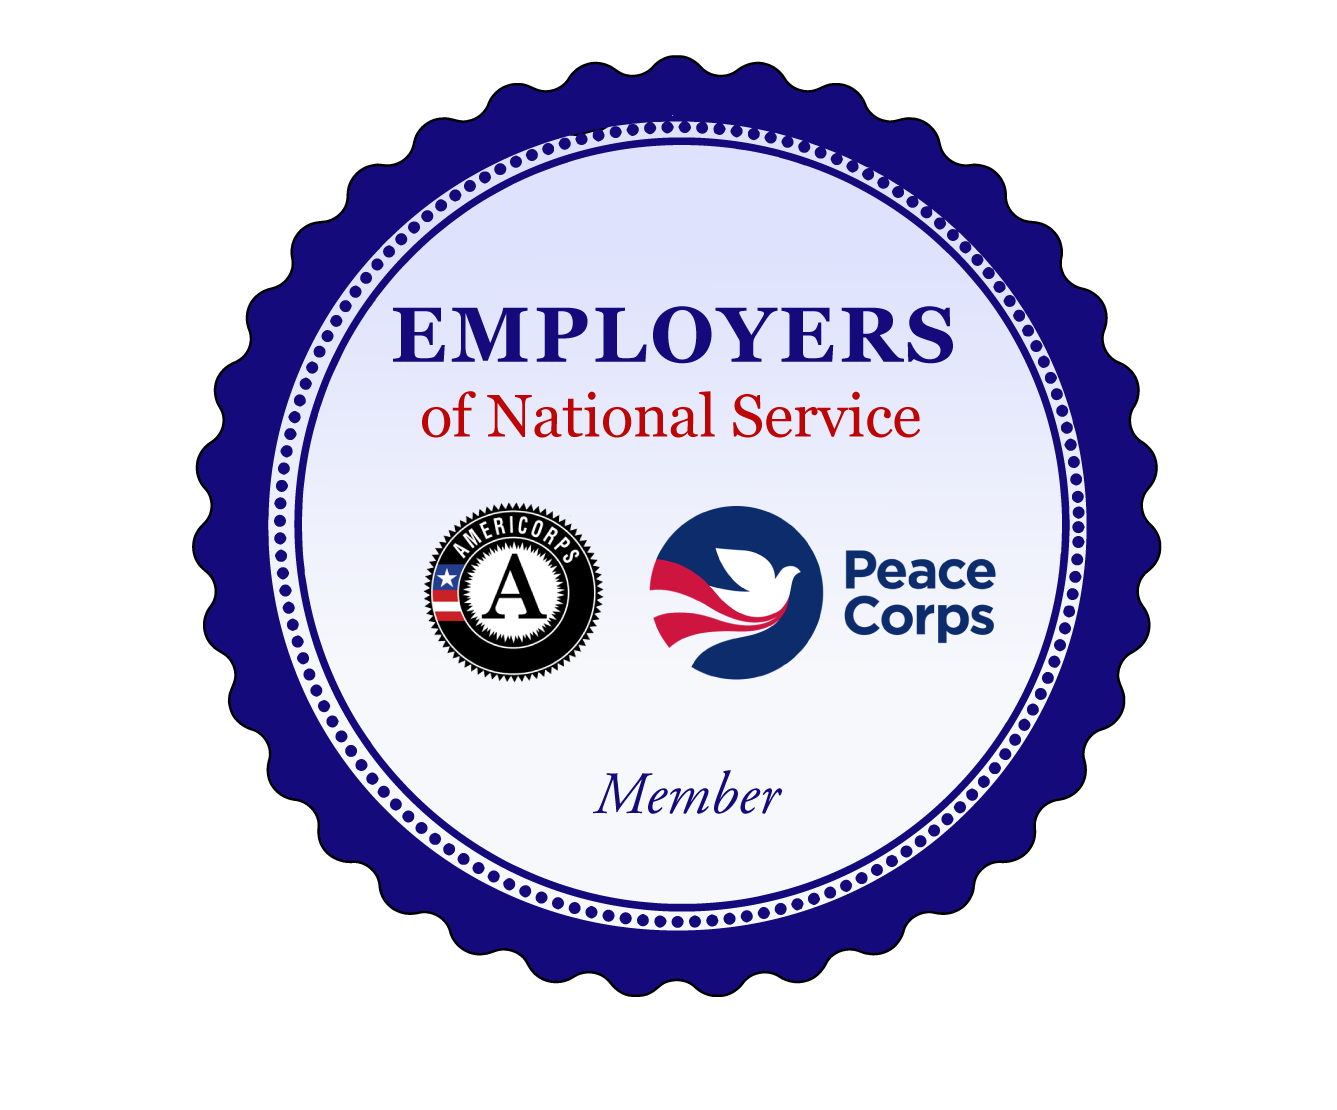 Employers of National Service